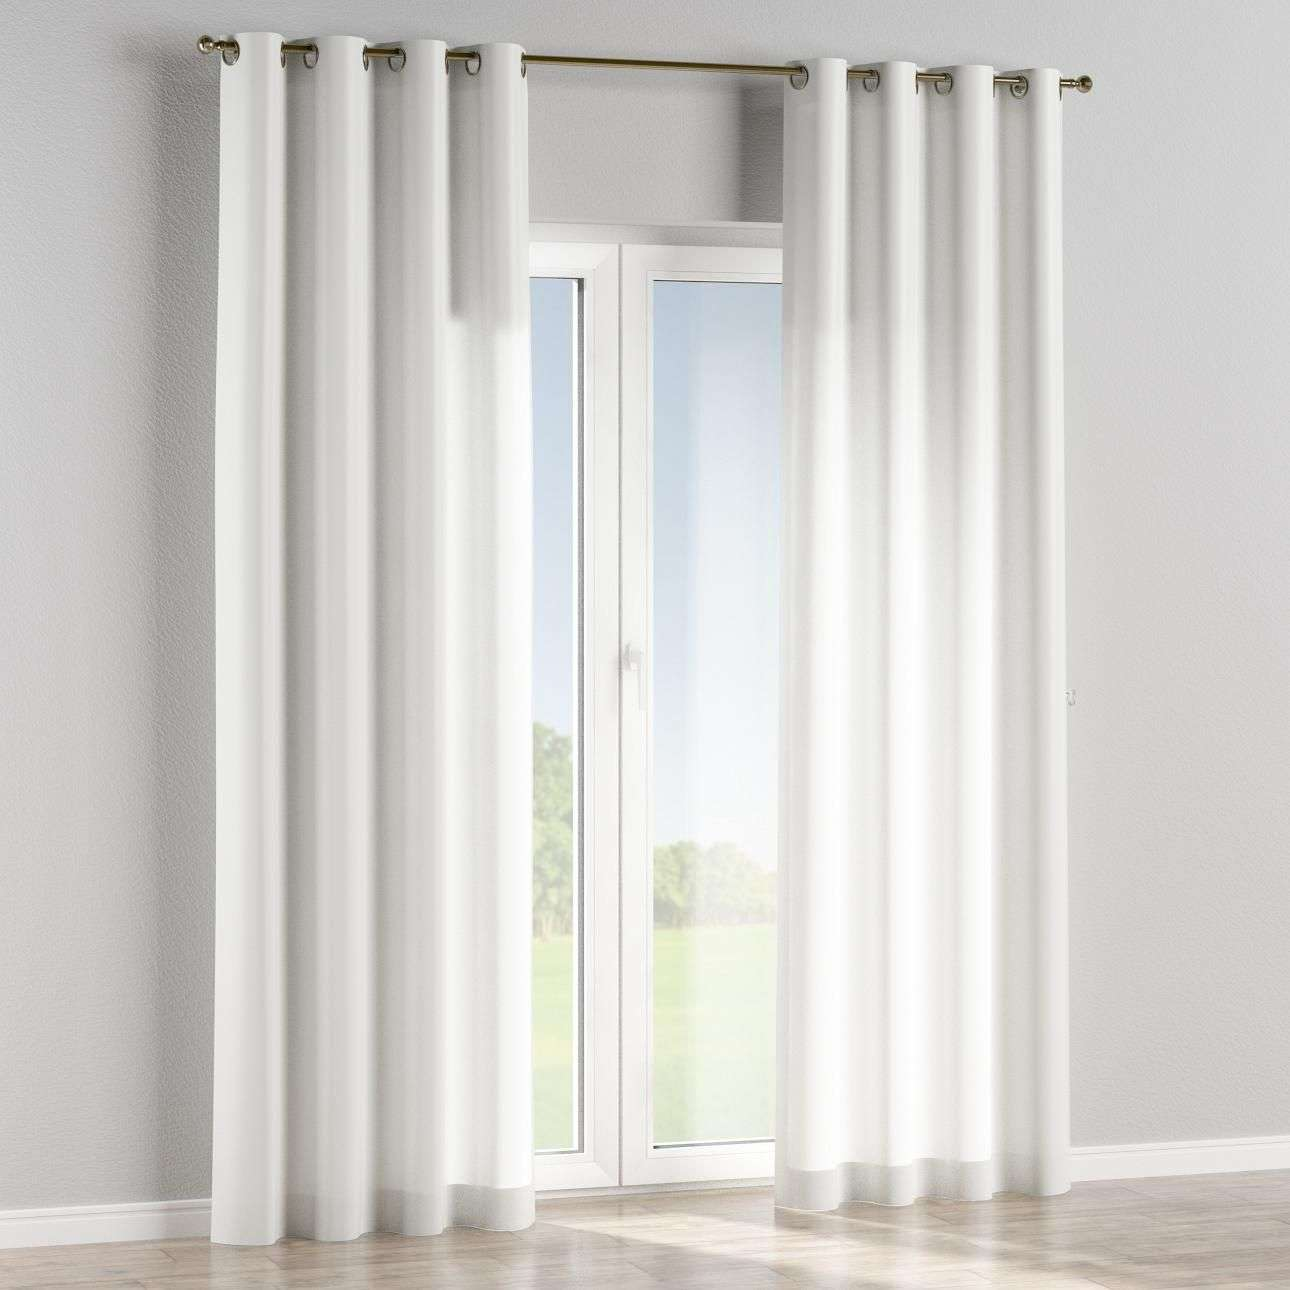 Eyelet curtains in collection Victoria, fabric: 130-06